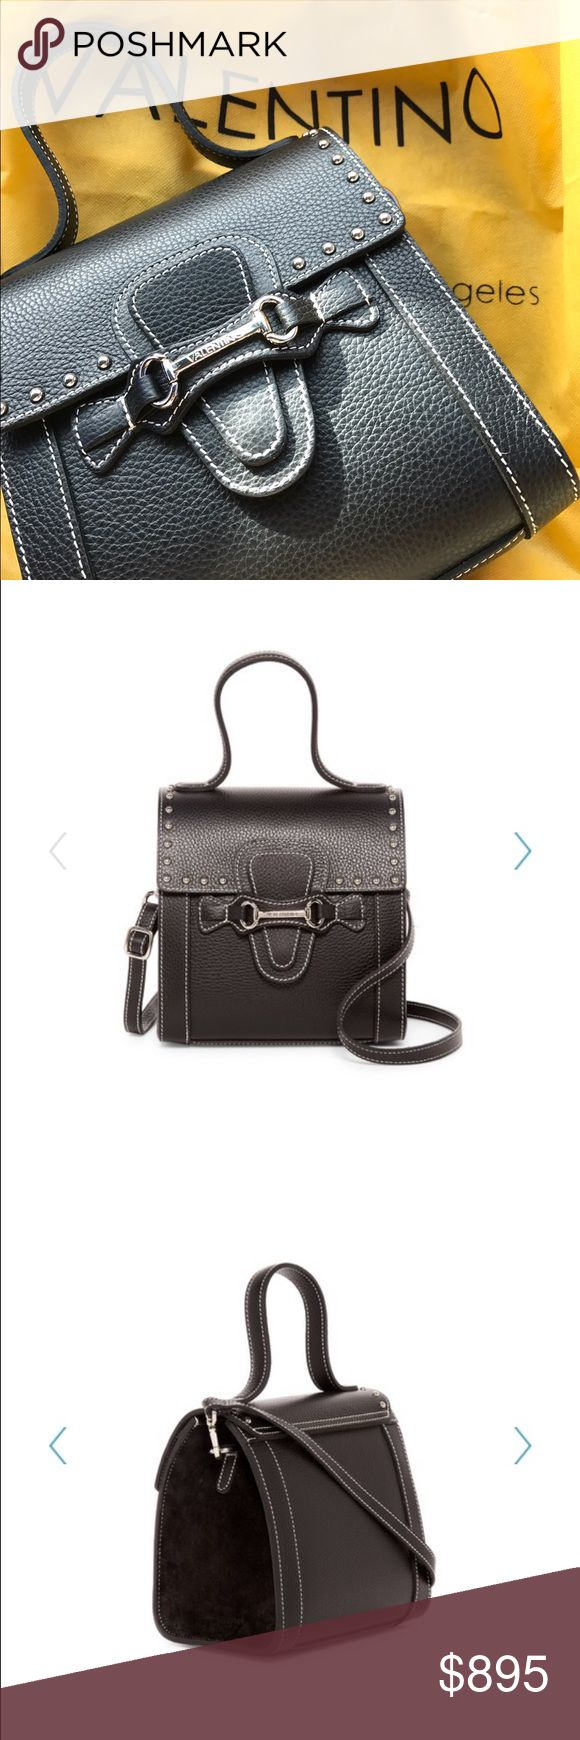 """SALE  Valentino  Agnese bag - Single top handle - Detachable, adjustable crossbody strap  - Foldover top with slip lock snap button closure - Exterior features leather construction with suede panels, logo embossed metal bit, and studded detail  - Interior features 1 wall zip pocket - Dust bag included  - Approx. 8"""" H x 7.5"""" W x 4.5"""" D - Approx. 5"""" handle drop, 13-24"""" strap drop - Made in Italy Valentino Bags Mini Bags"""